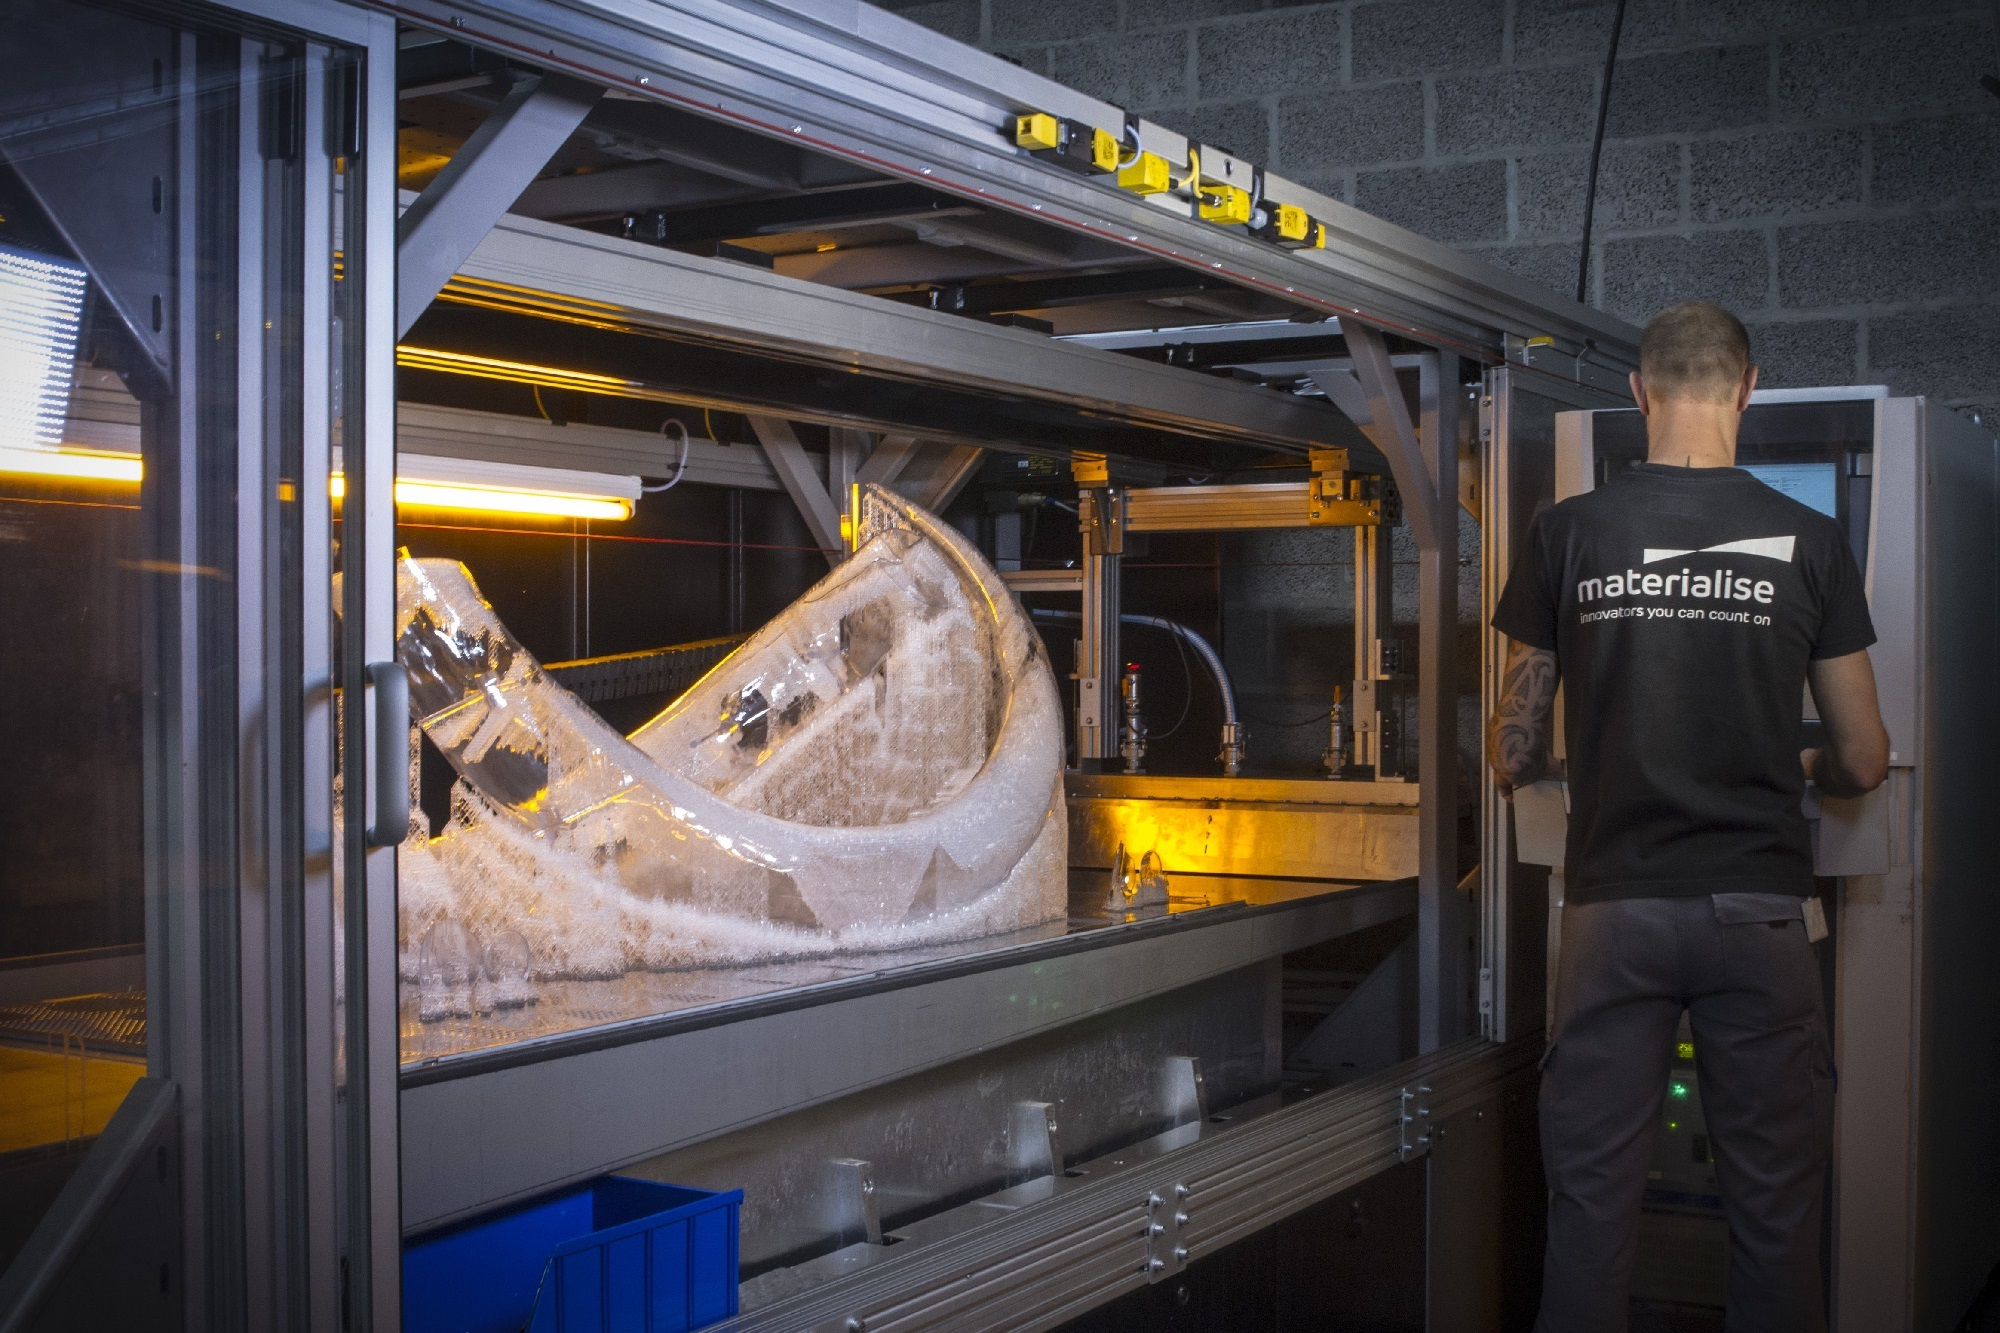 "The Mammoth of Lier took 1259 hours to 3D print on the Materialise ""Mammoth Stereolithography"" printers"